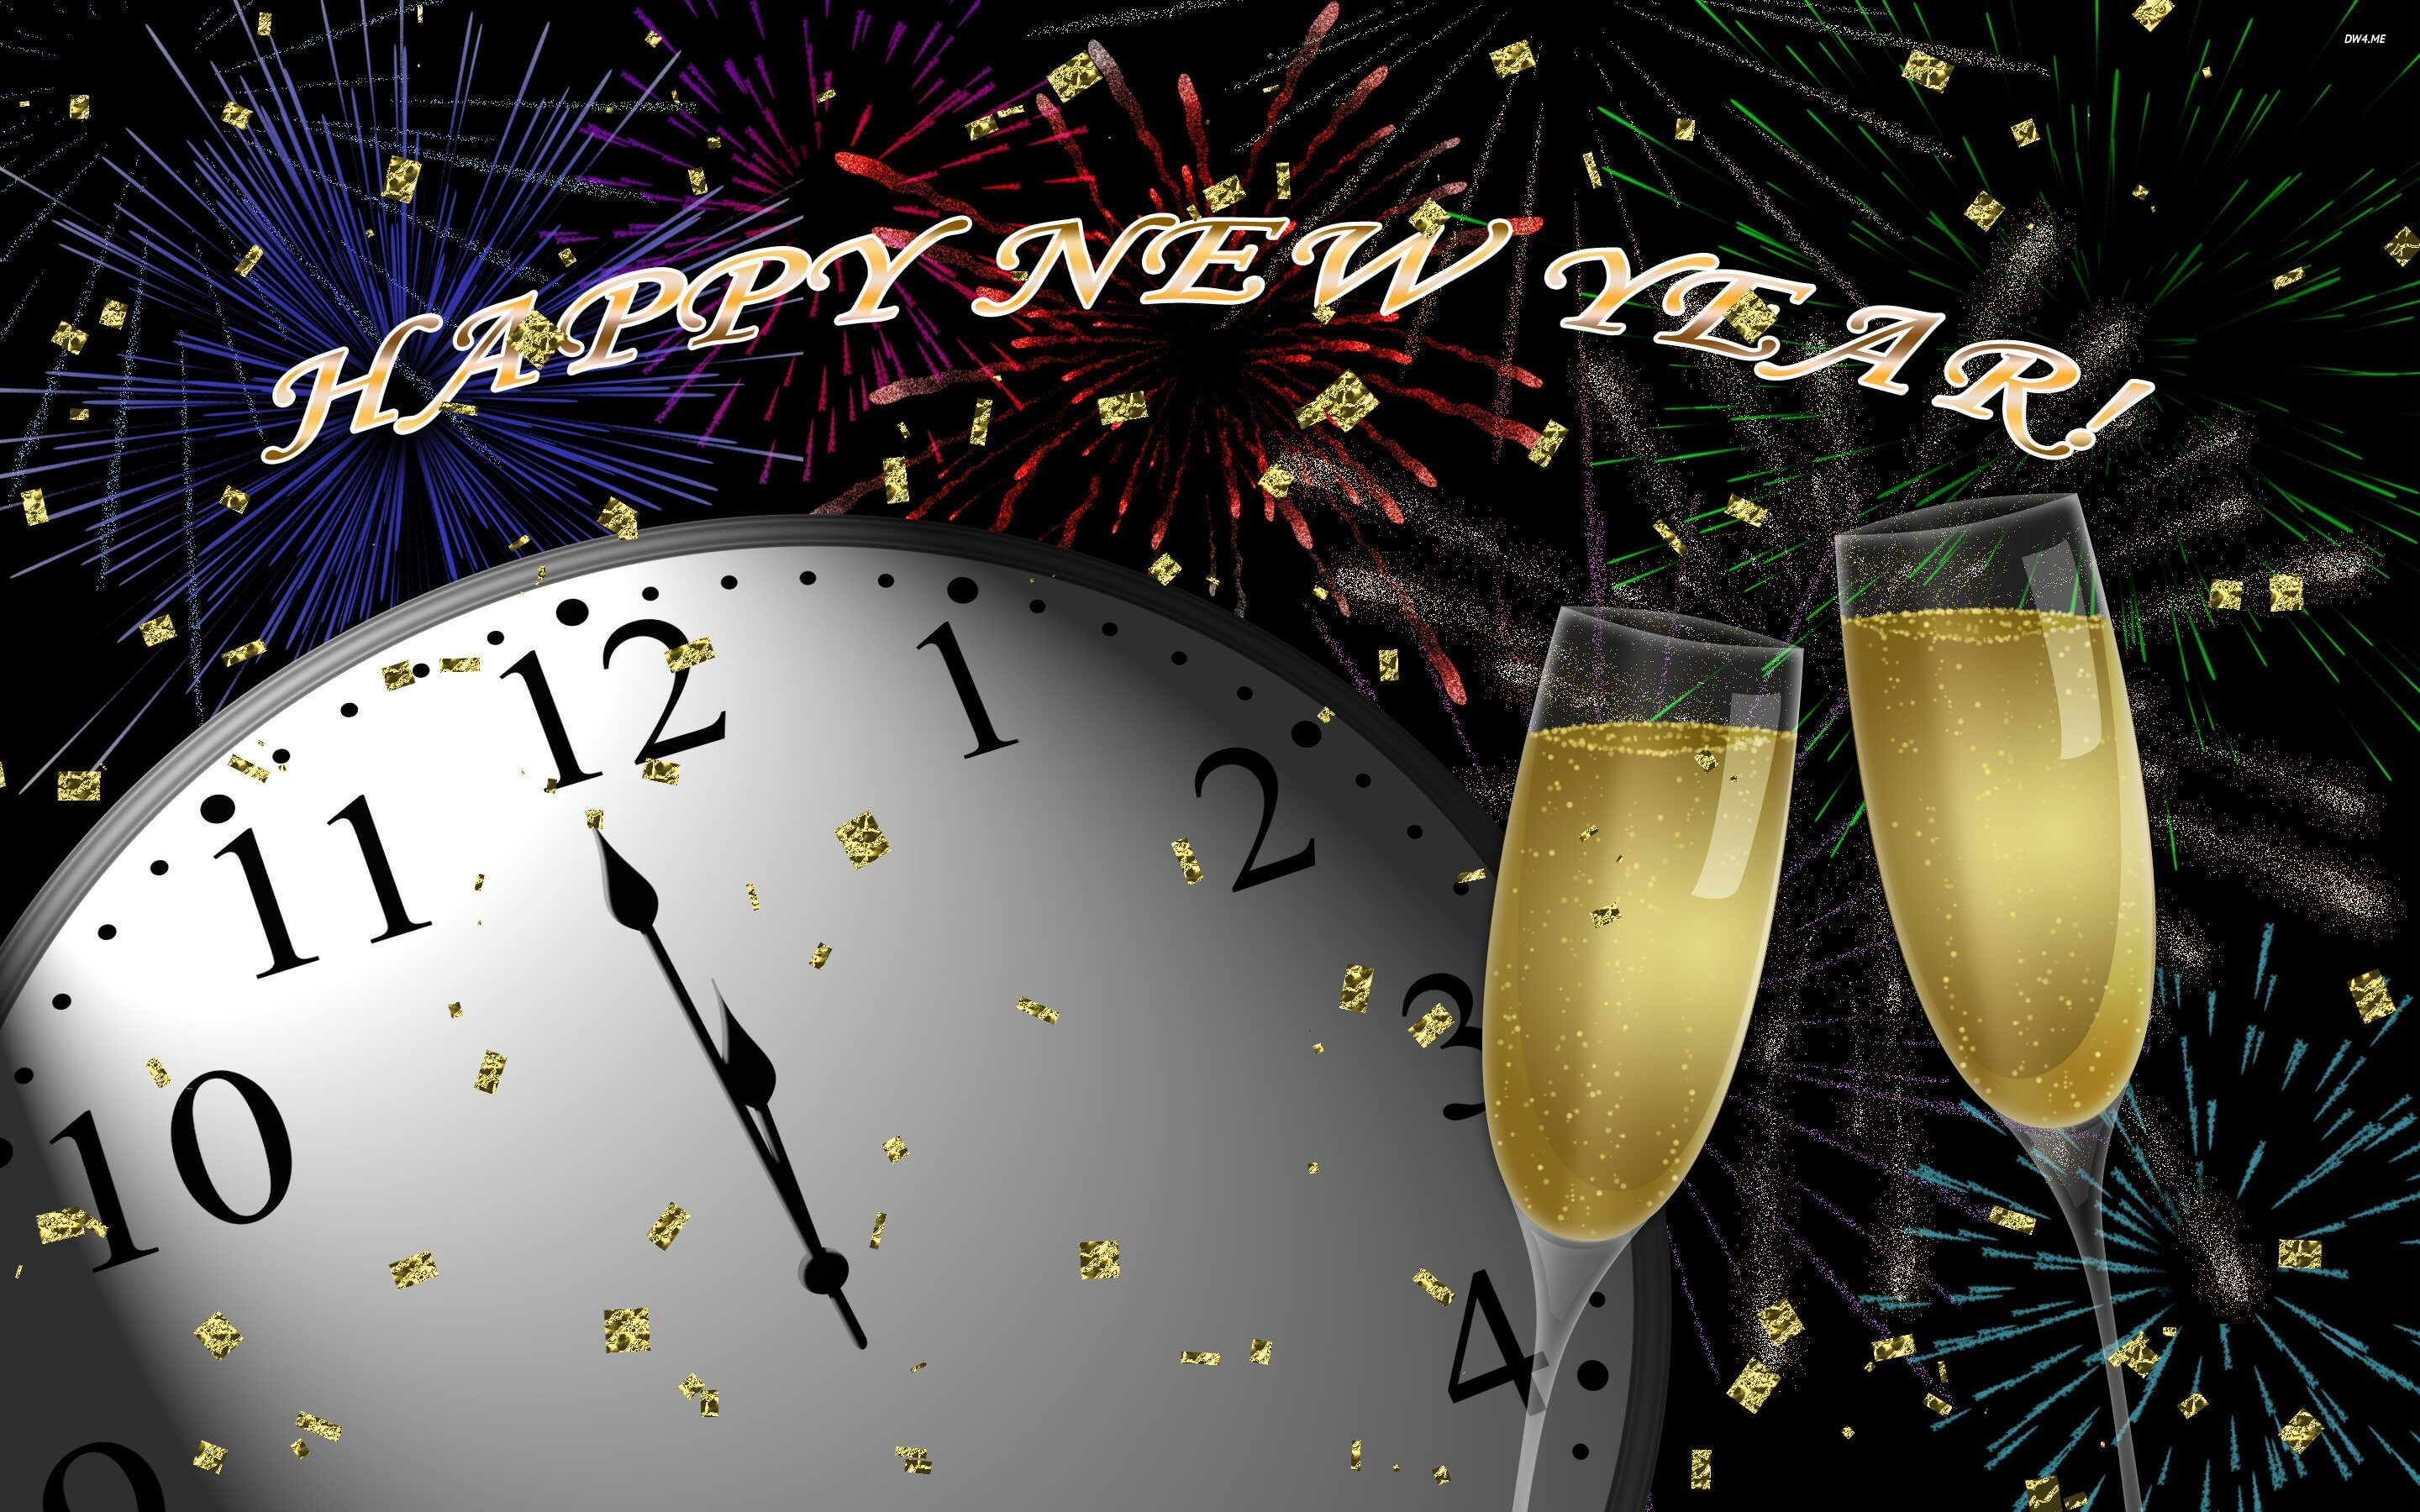 happy new year countdown image midnight champagne fireworks